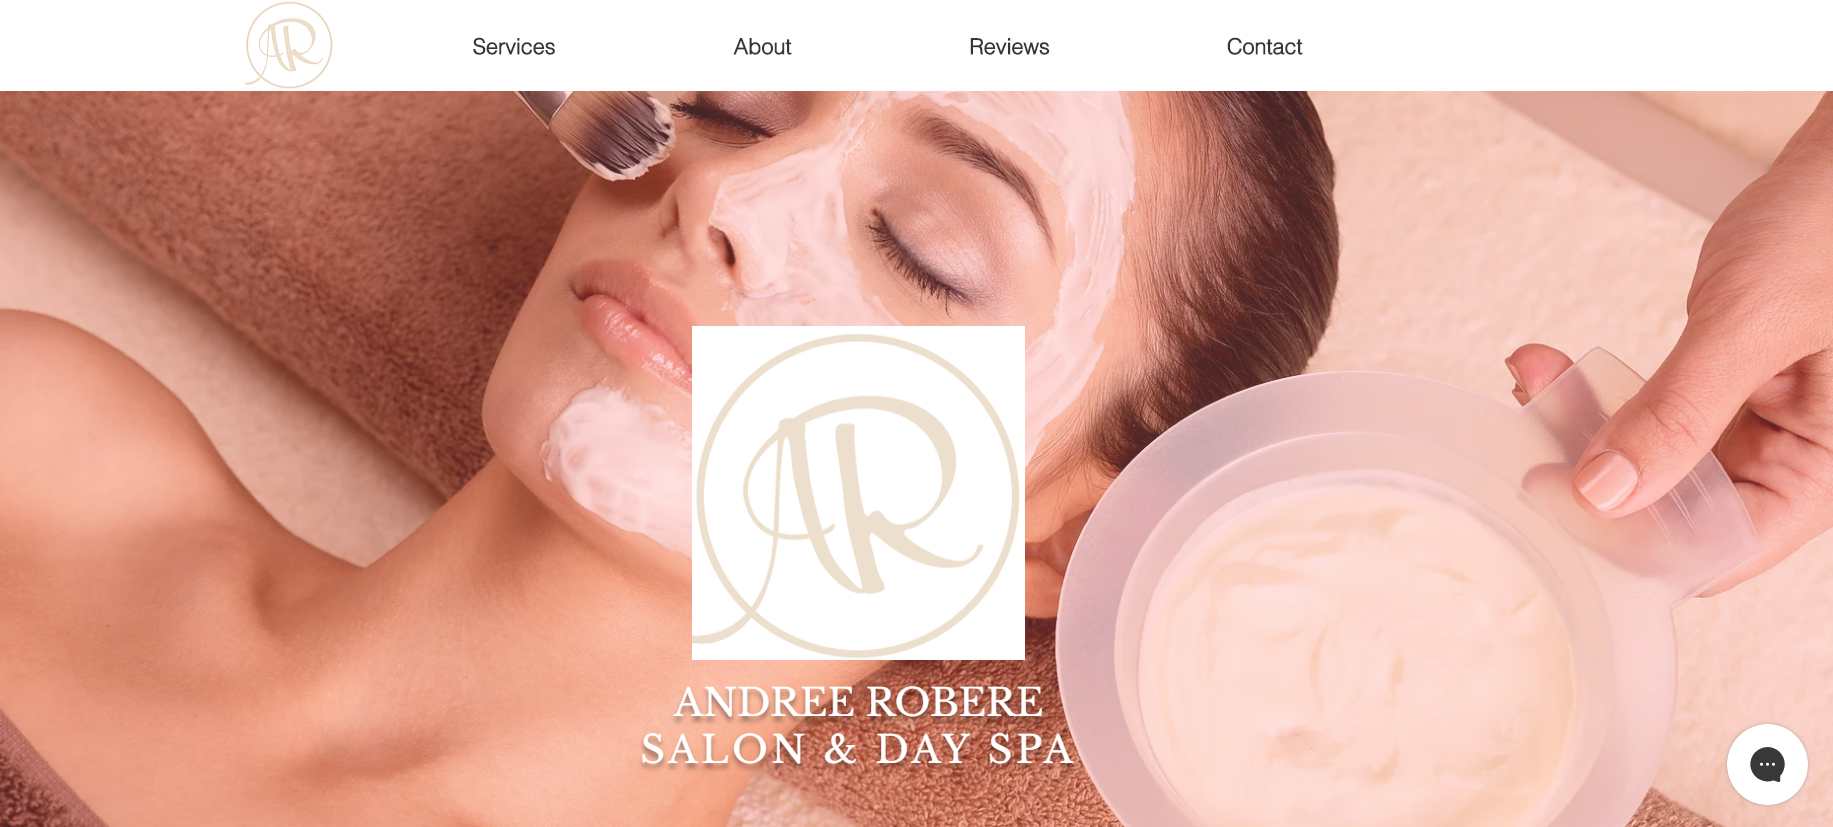 Andree Rovere Spa